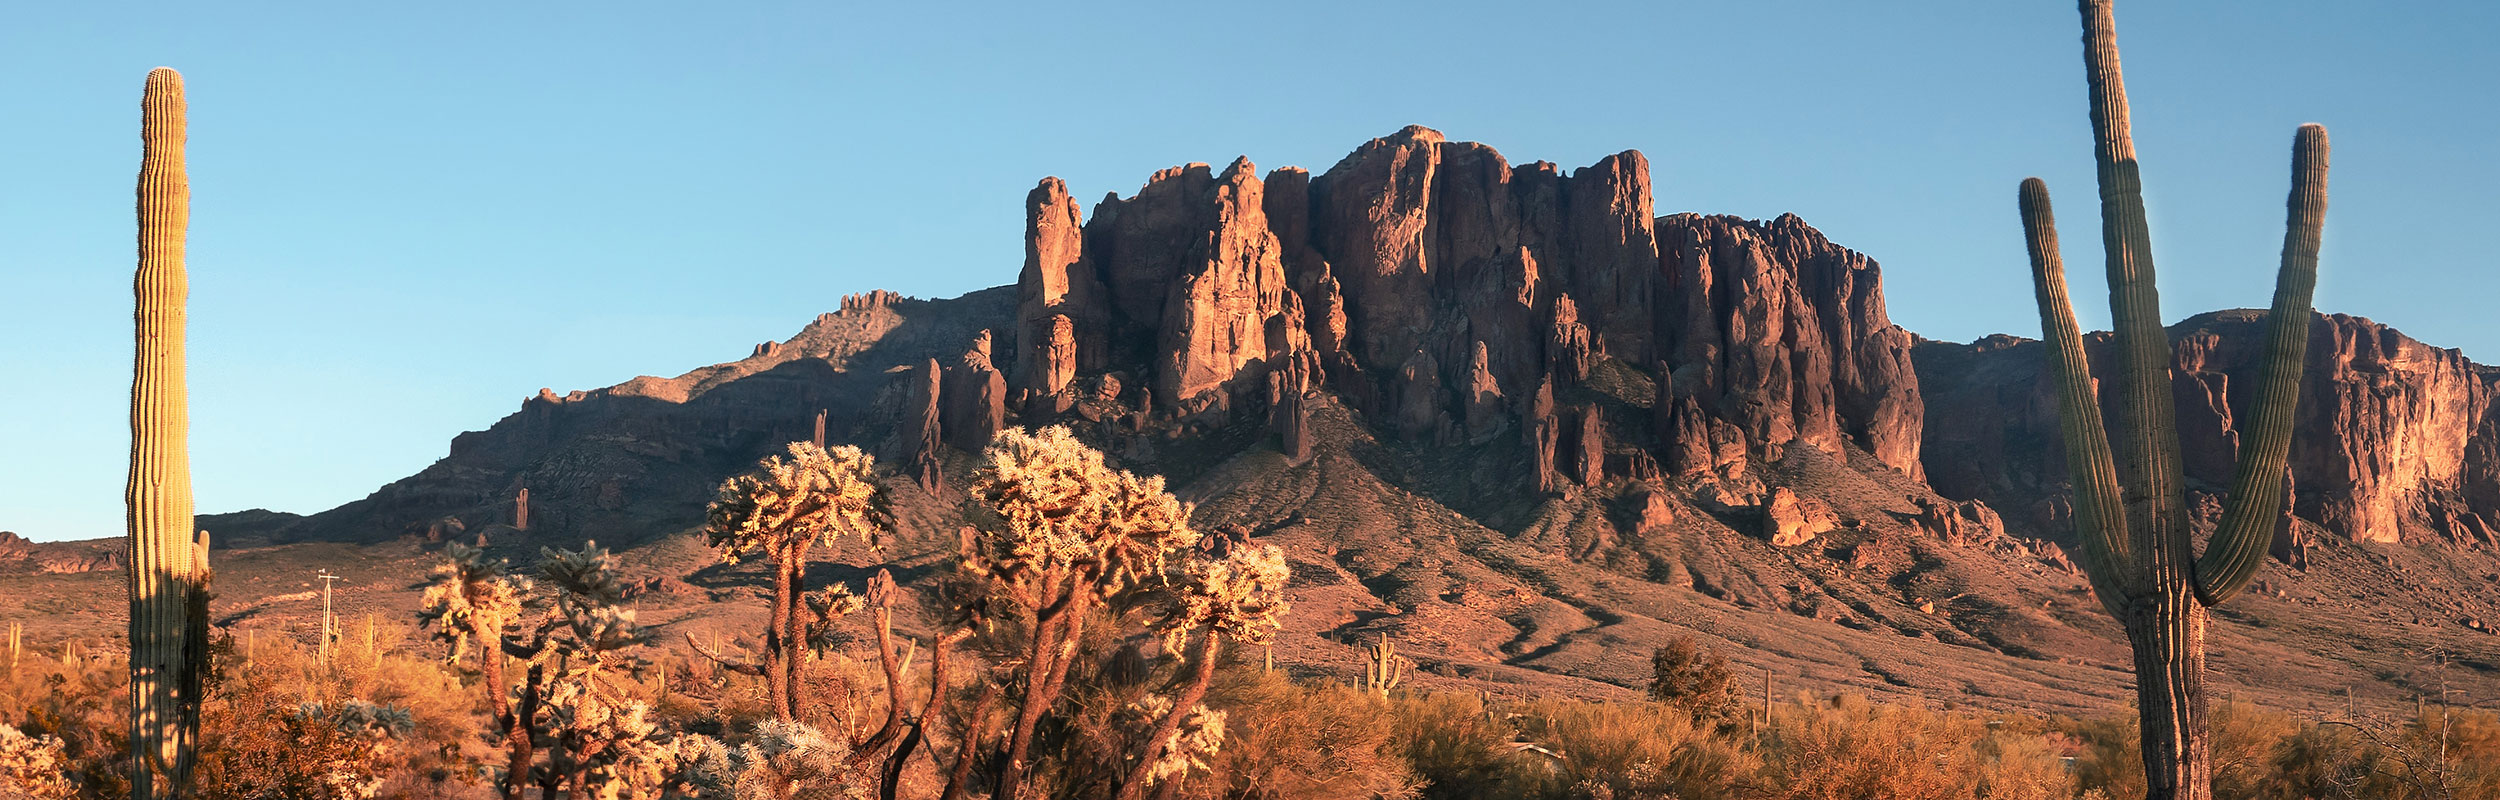 Butte and cacti in desert